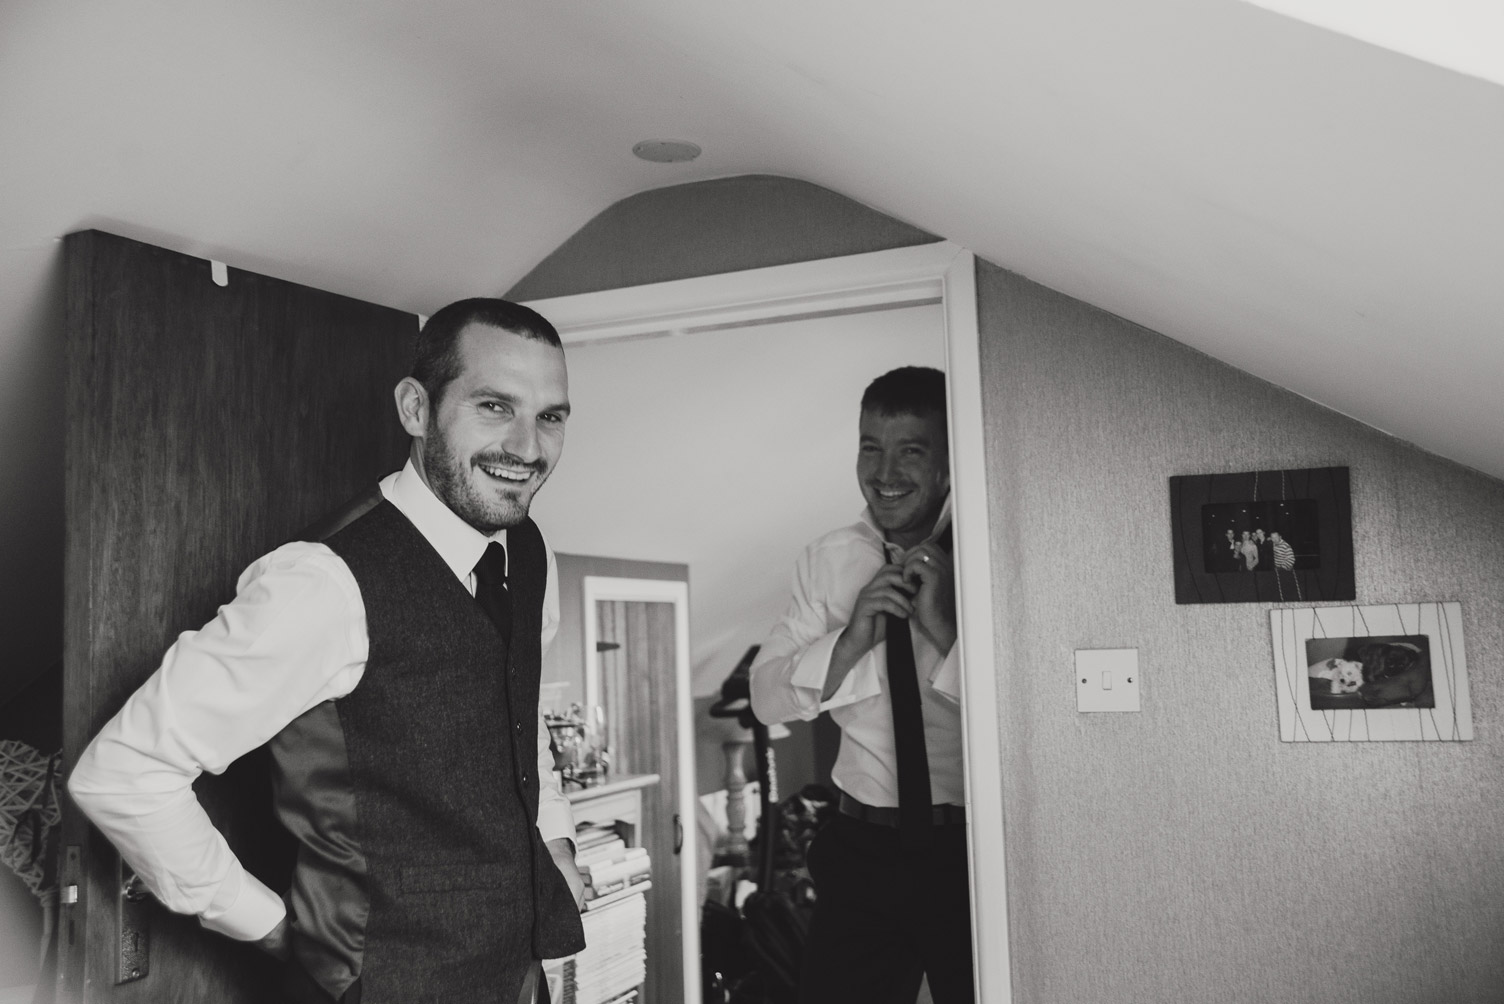 Groom getting ready on the morning of the wedding. Wedding photography meath.